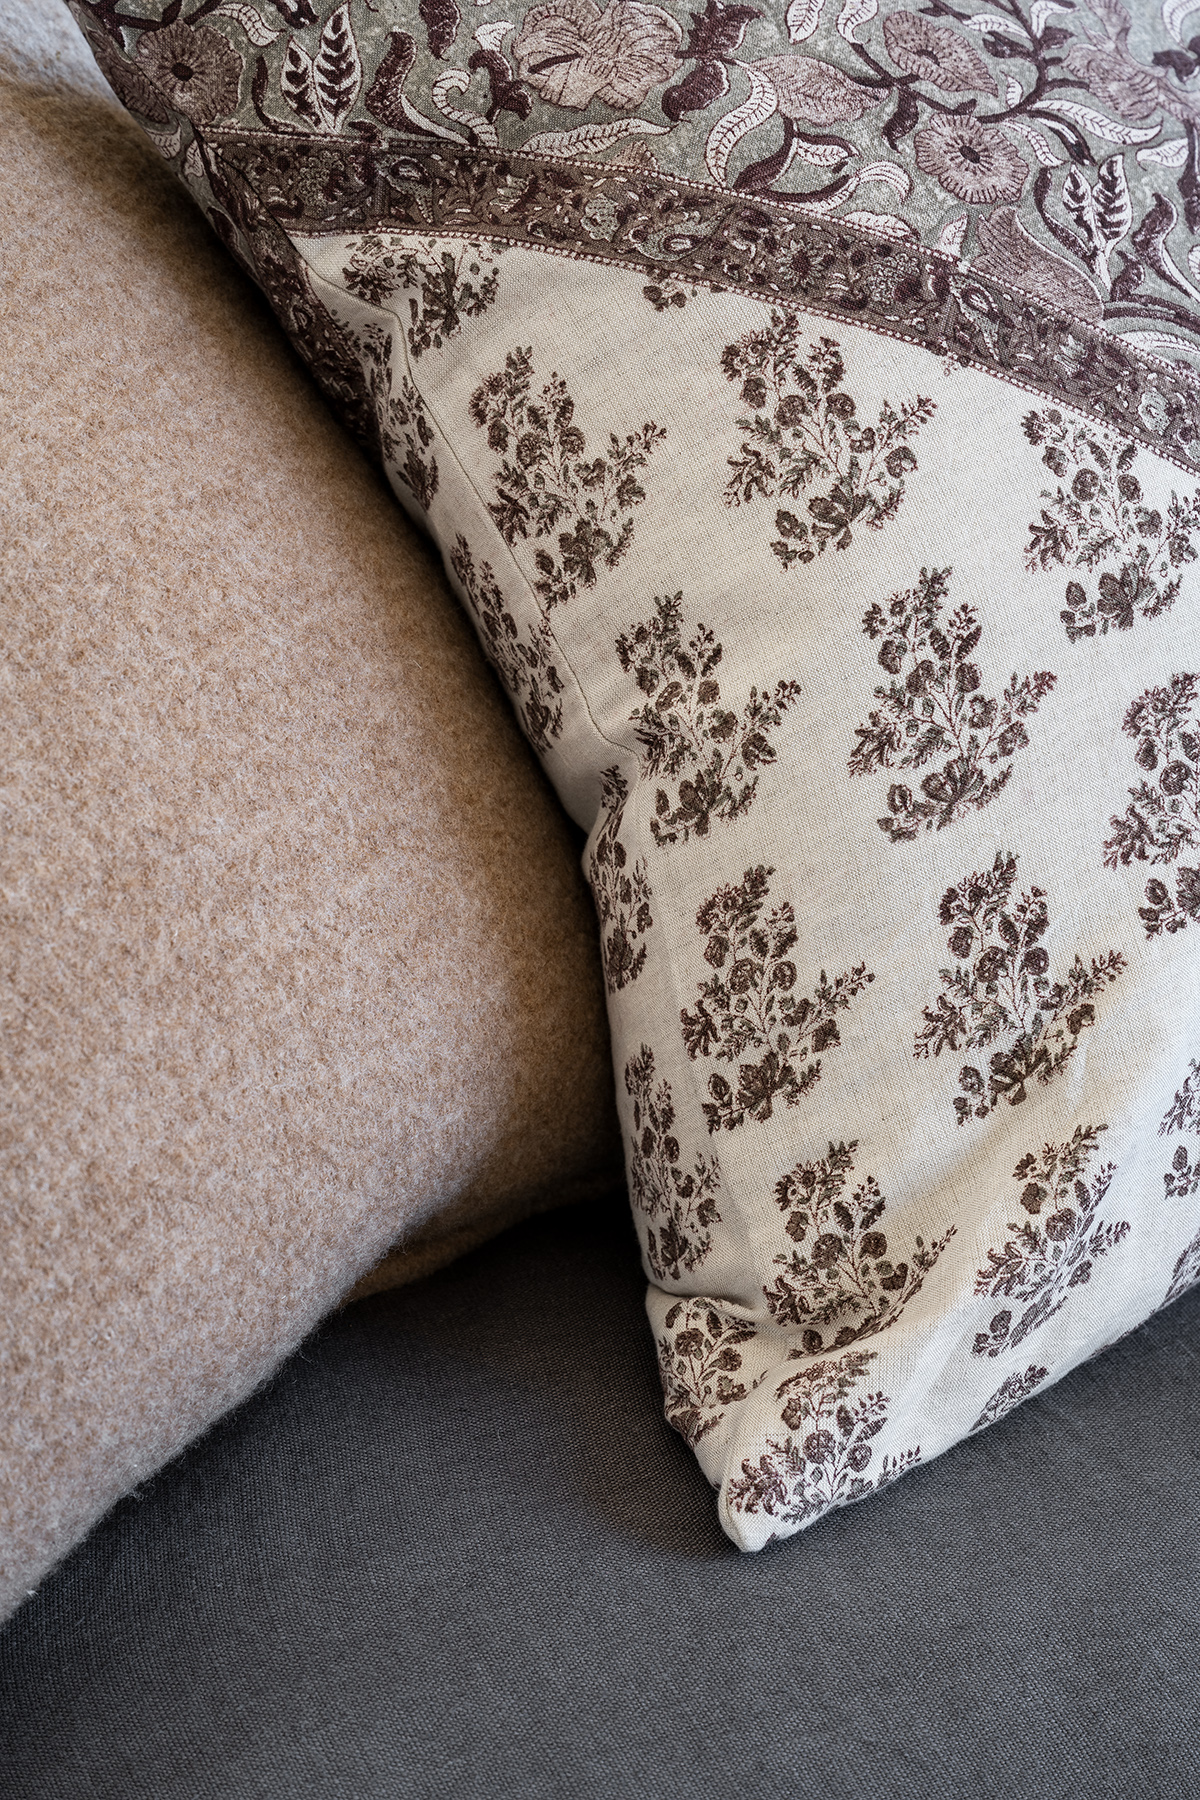 How to Mix Multiple Patterns in One Space